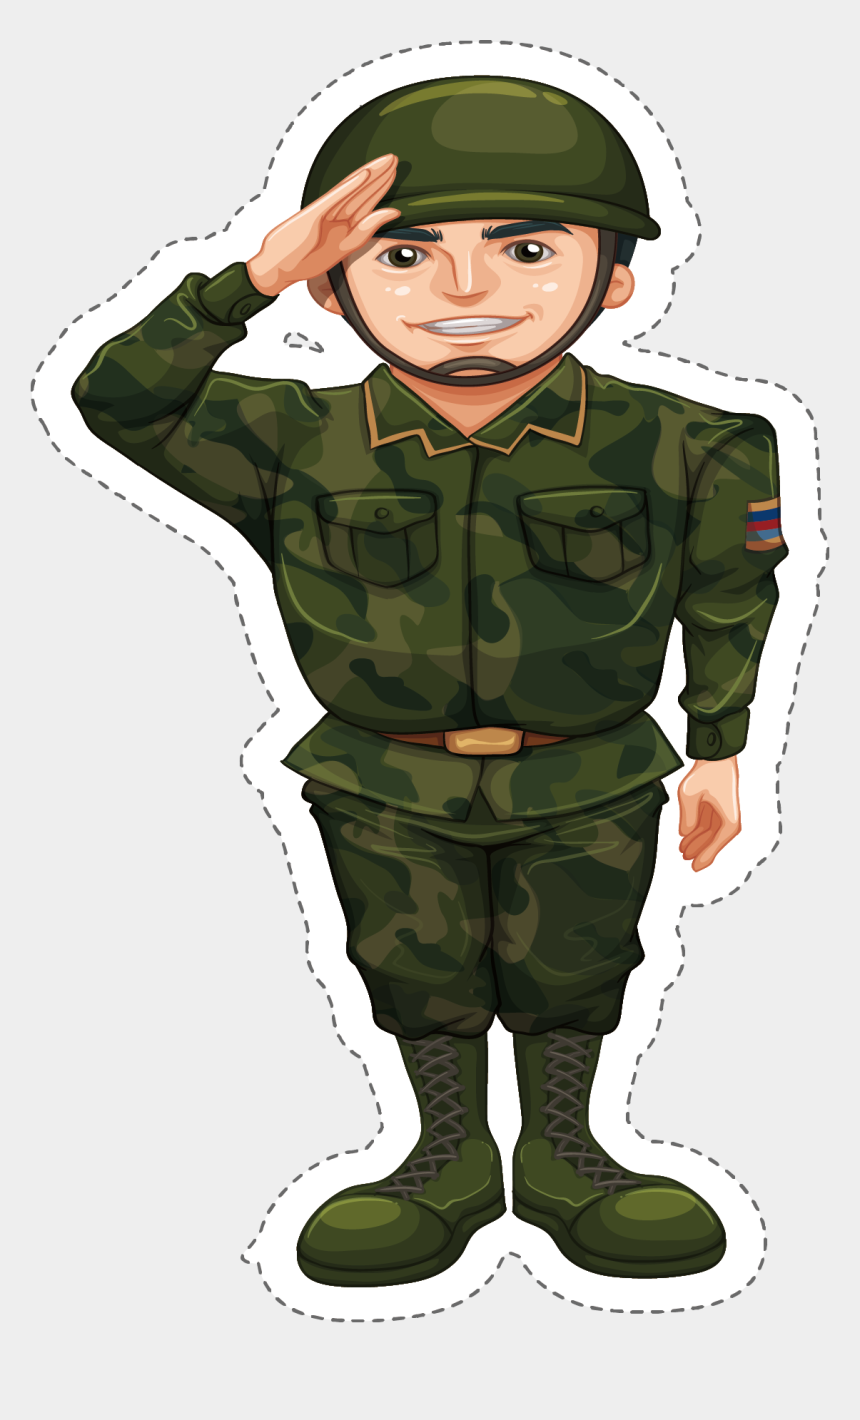 Military Clipart Army Camouflage - Soldier Doing The Salute